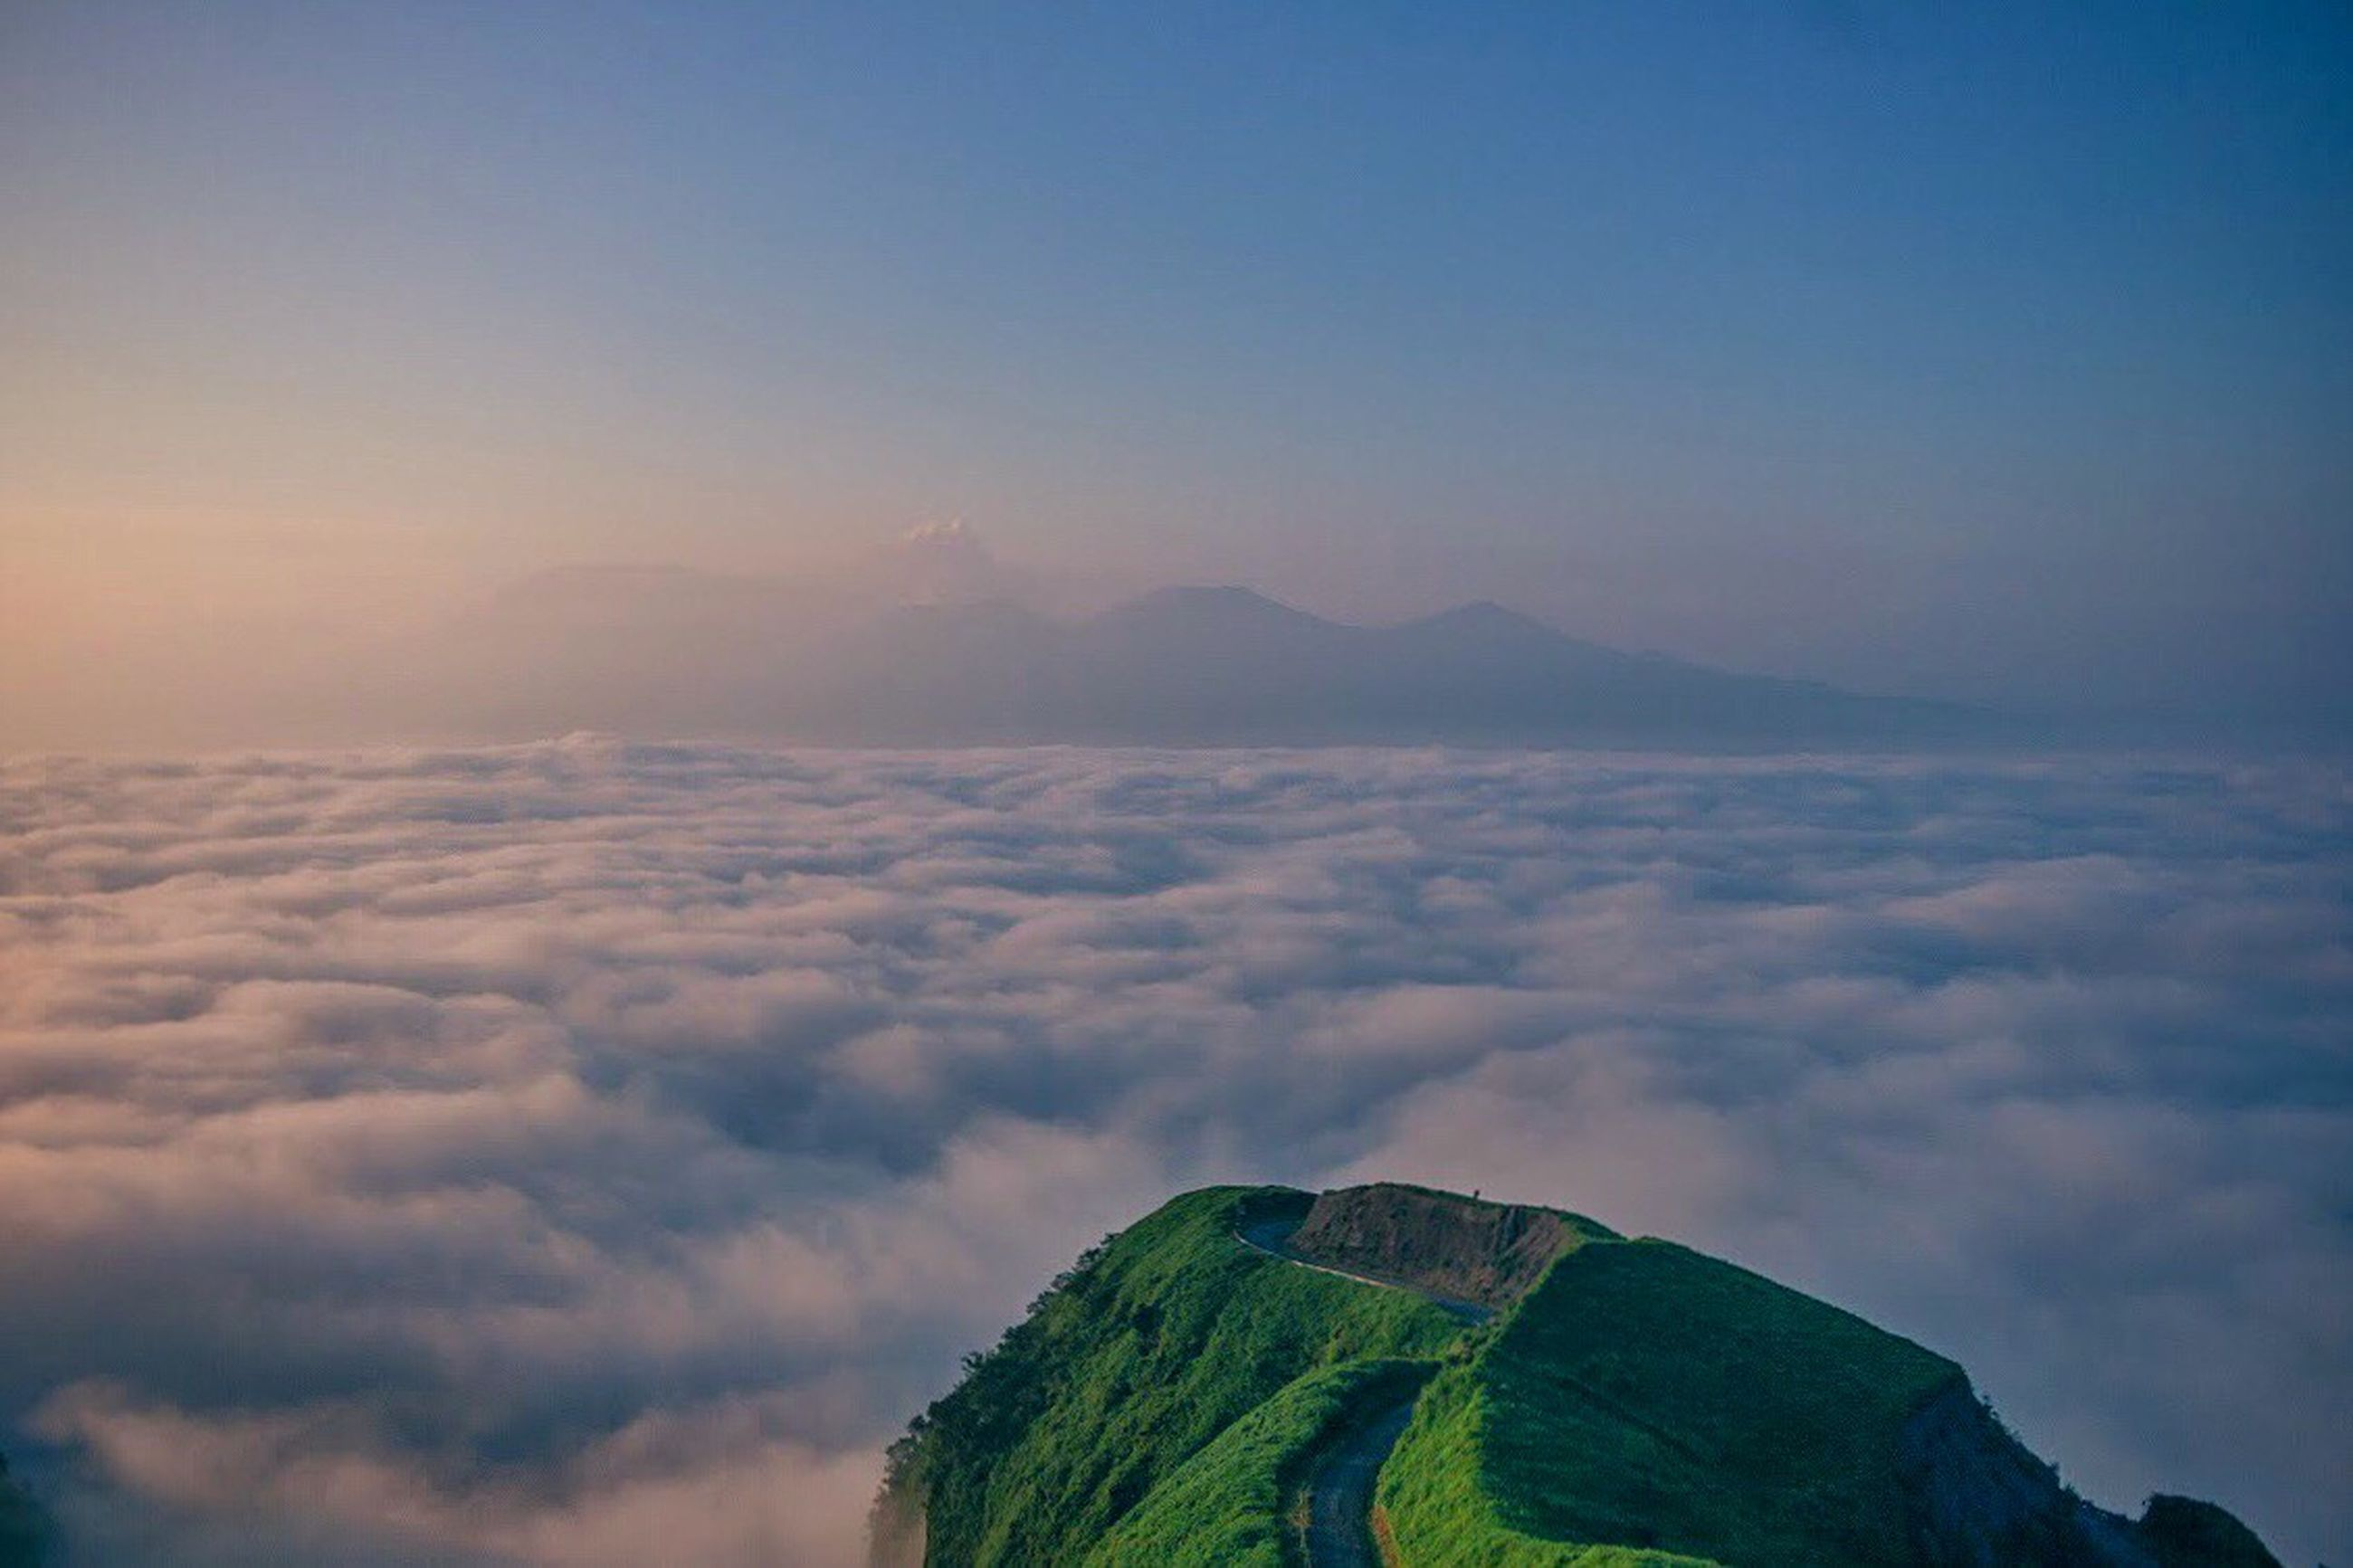 scenics, sky, beauty in nature, tranquil scene, tranquility, mountain, nature, cloud - sky, landscape, idyllic, cloud, outdoors, no people, blue, majestic, aerial view, day, high angle view, mountain range, remote